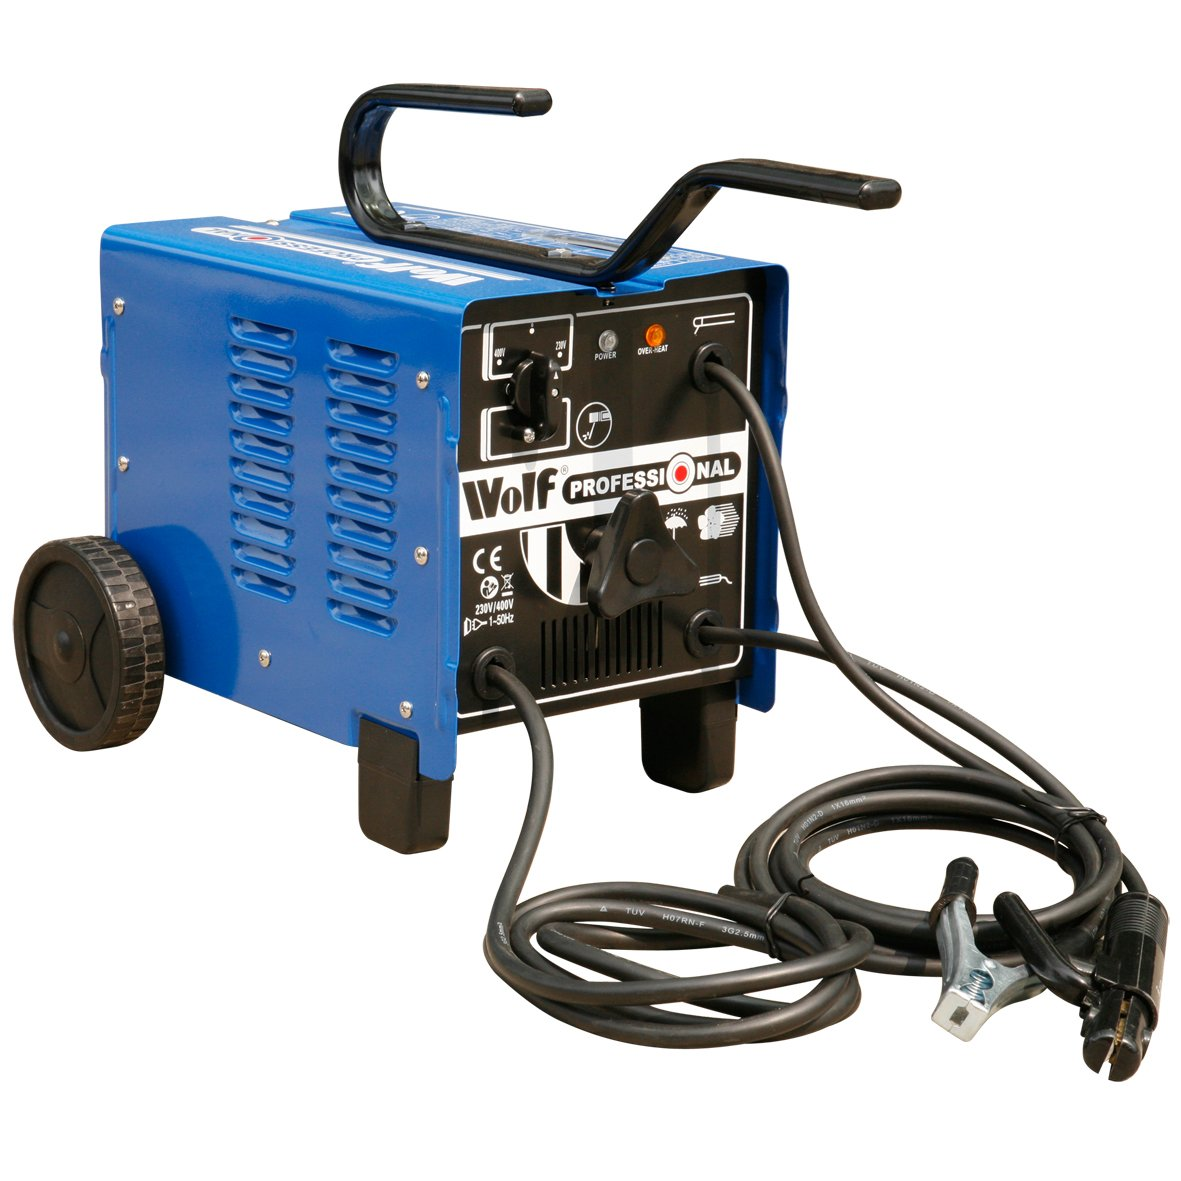 Wolf Pro 250 ARC Turbo Fan Cooled Welder 60 Amps - 250 Amp Range With Thermal Overload Protection